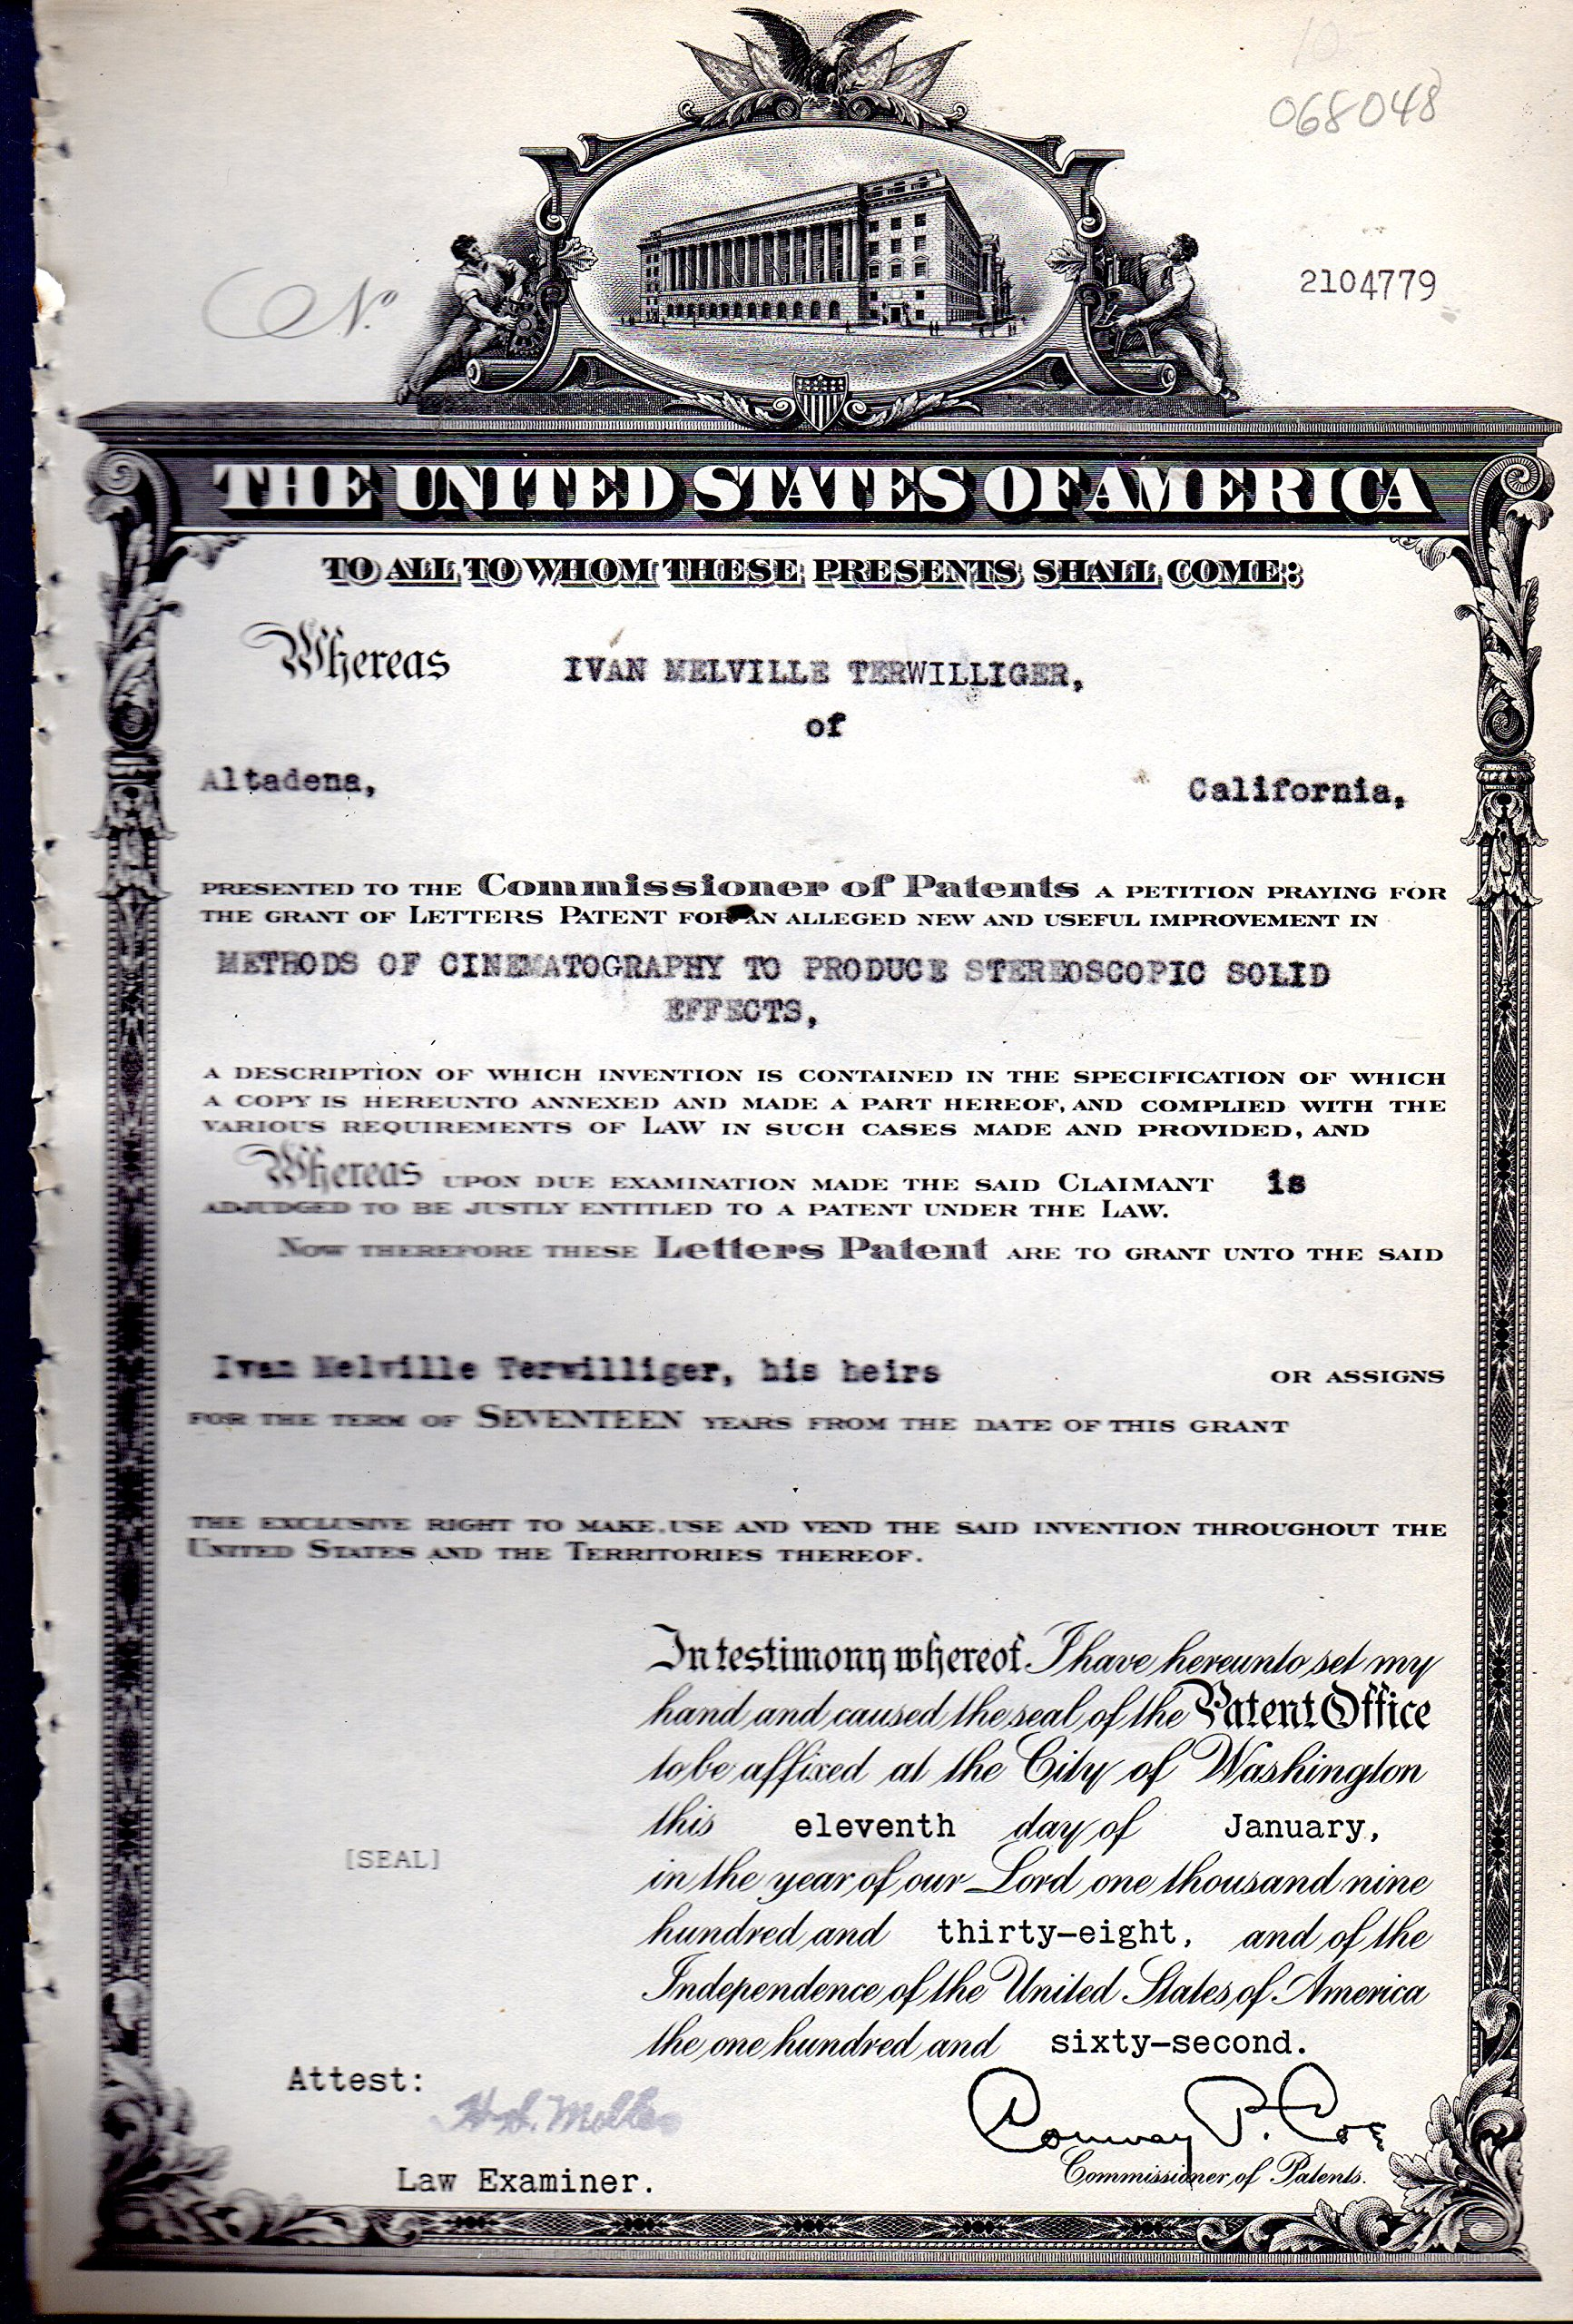 patent-2104779-granted-to-ivan-melville-terwilliger-for-an-alleged-new-and-useful-improvement-in-methods-of-cinematography-to-produce-stereoscopic-solid-effects-patent-certificate-dated-january-11-1938-disbound-copy